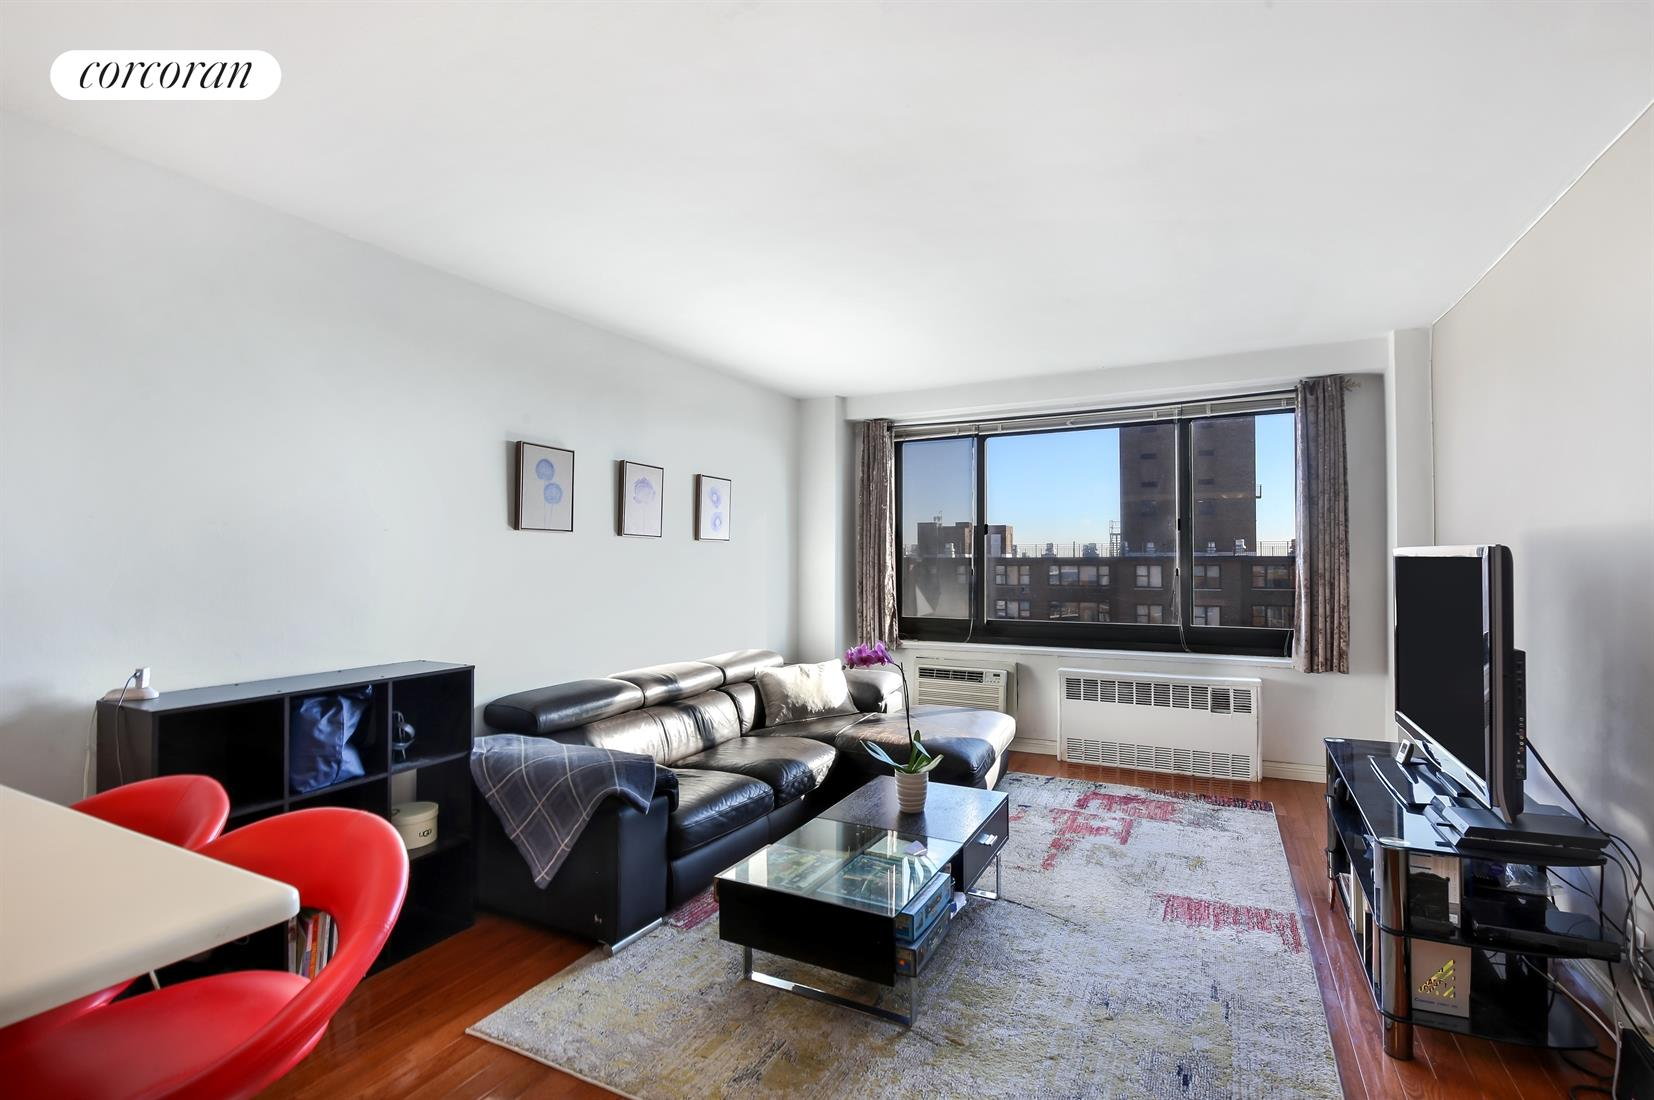 195 Willoughby Avenue, 1710, Bright & spacious living room